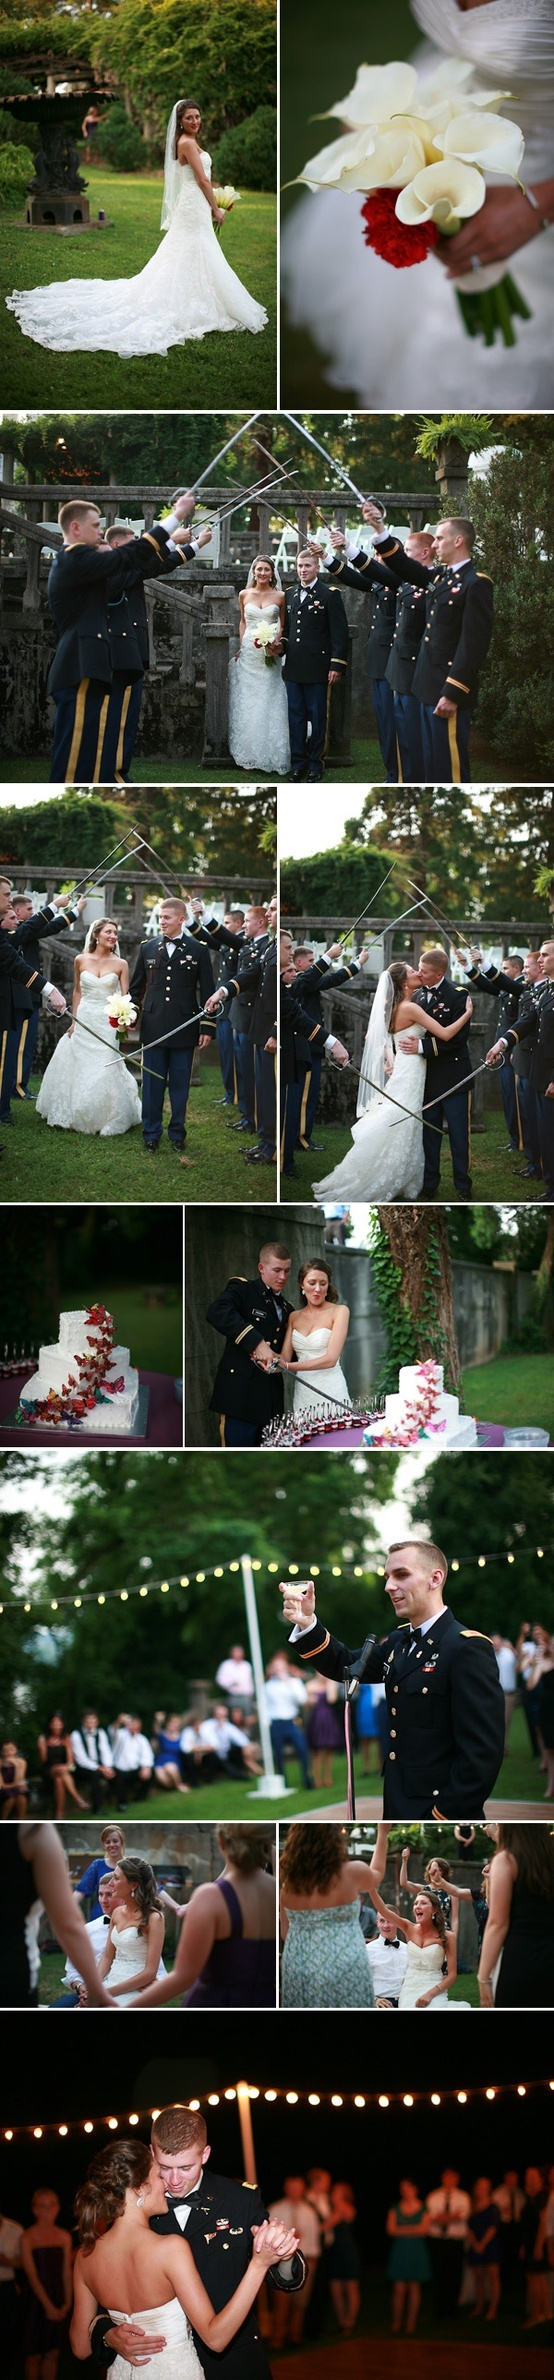 army wedding | sorority flower in bouquet | saber arch wedding | toasts    wedding in Knoxville, TN   Photo by Shannon Kelley